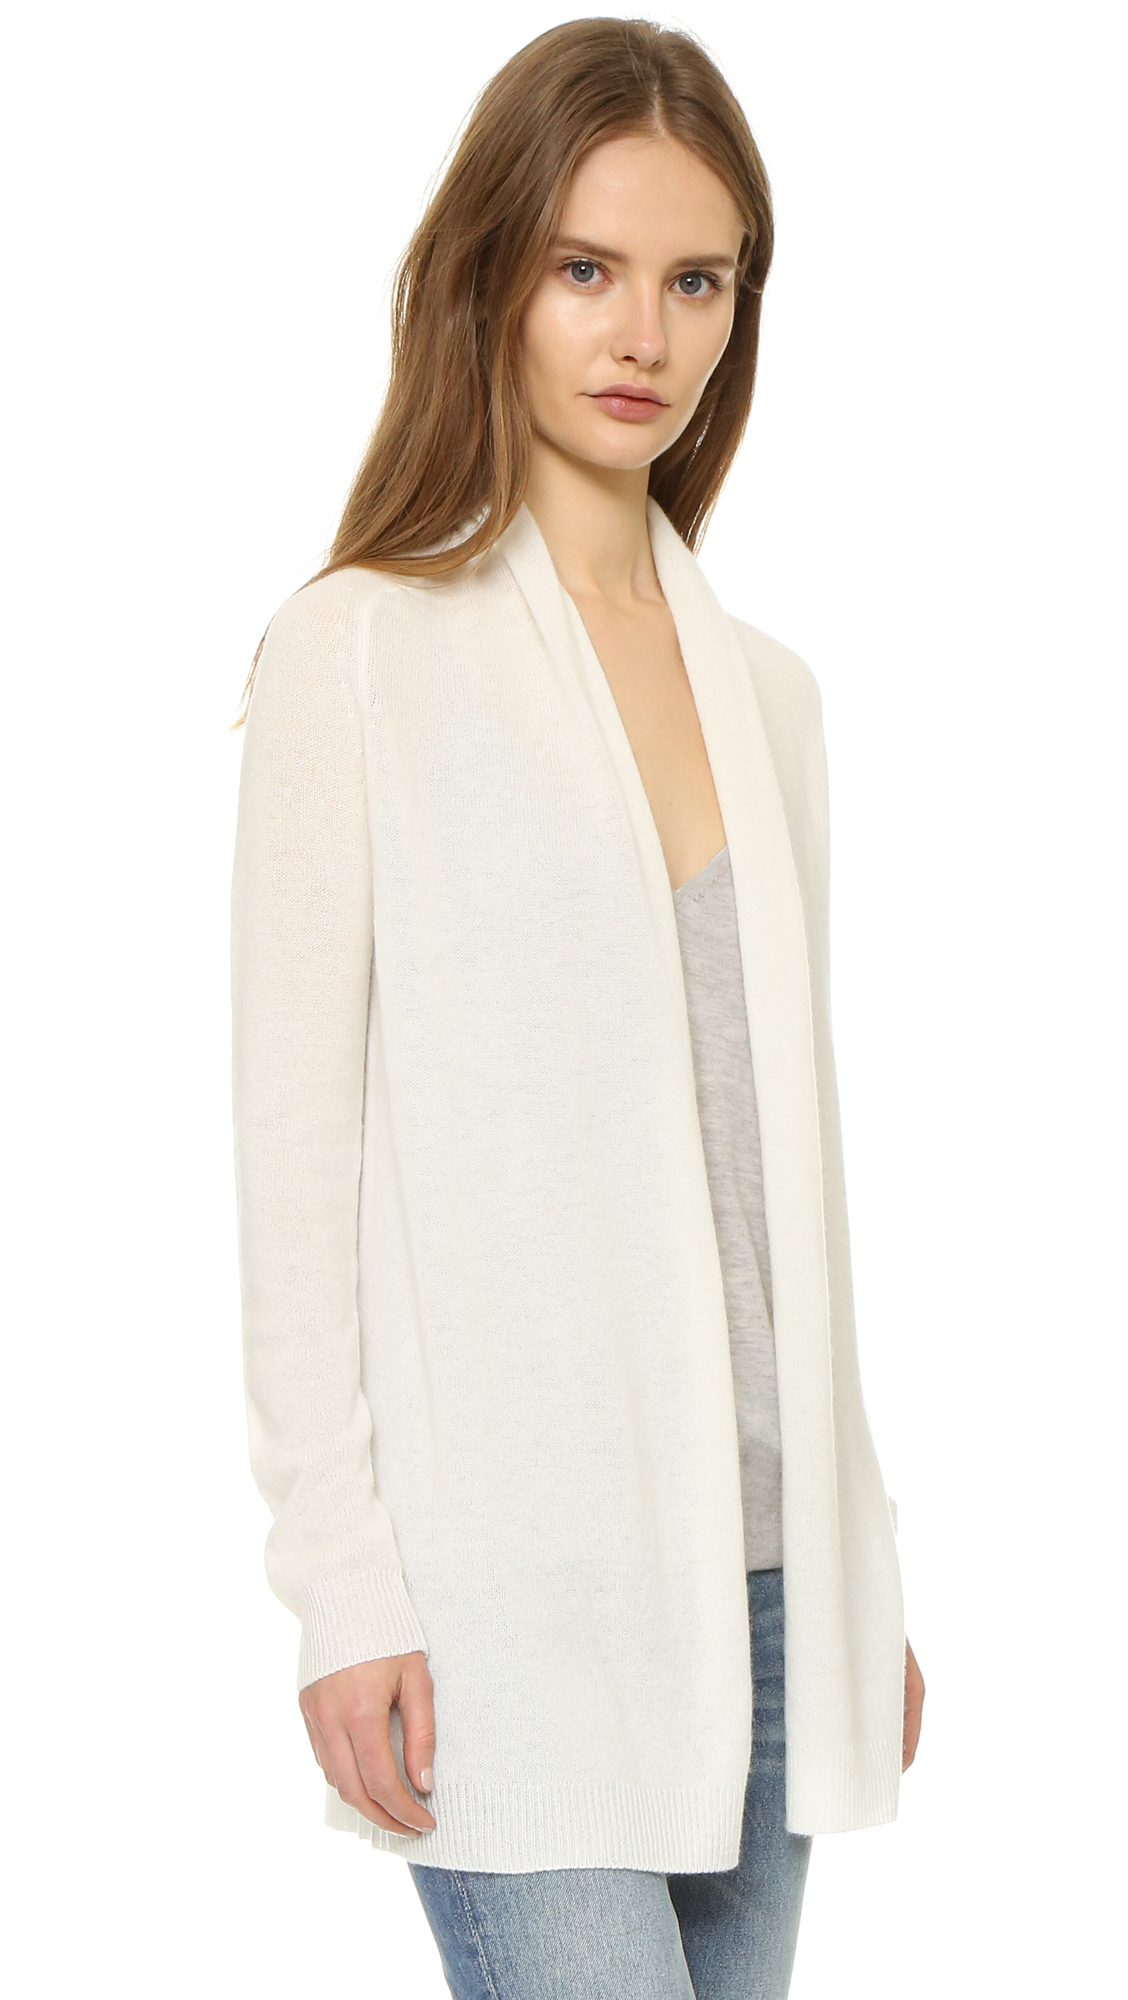 d8e68e2010c Theory Feather Ashtry Cashmere Cardigan in Natural - Lyst